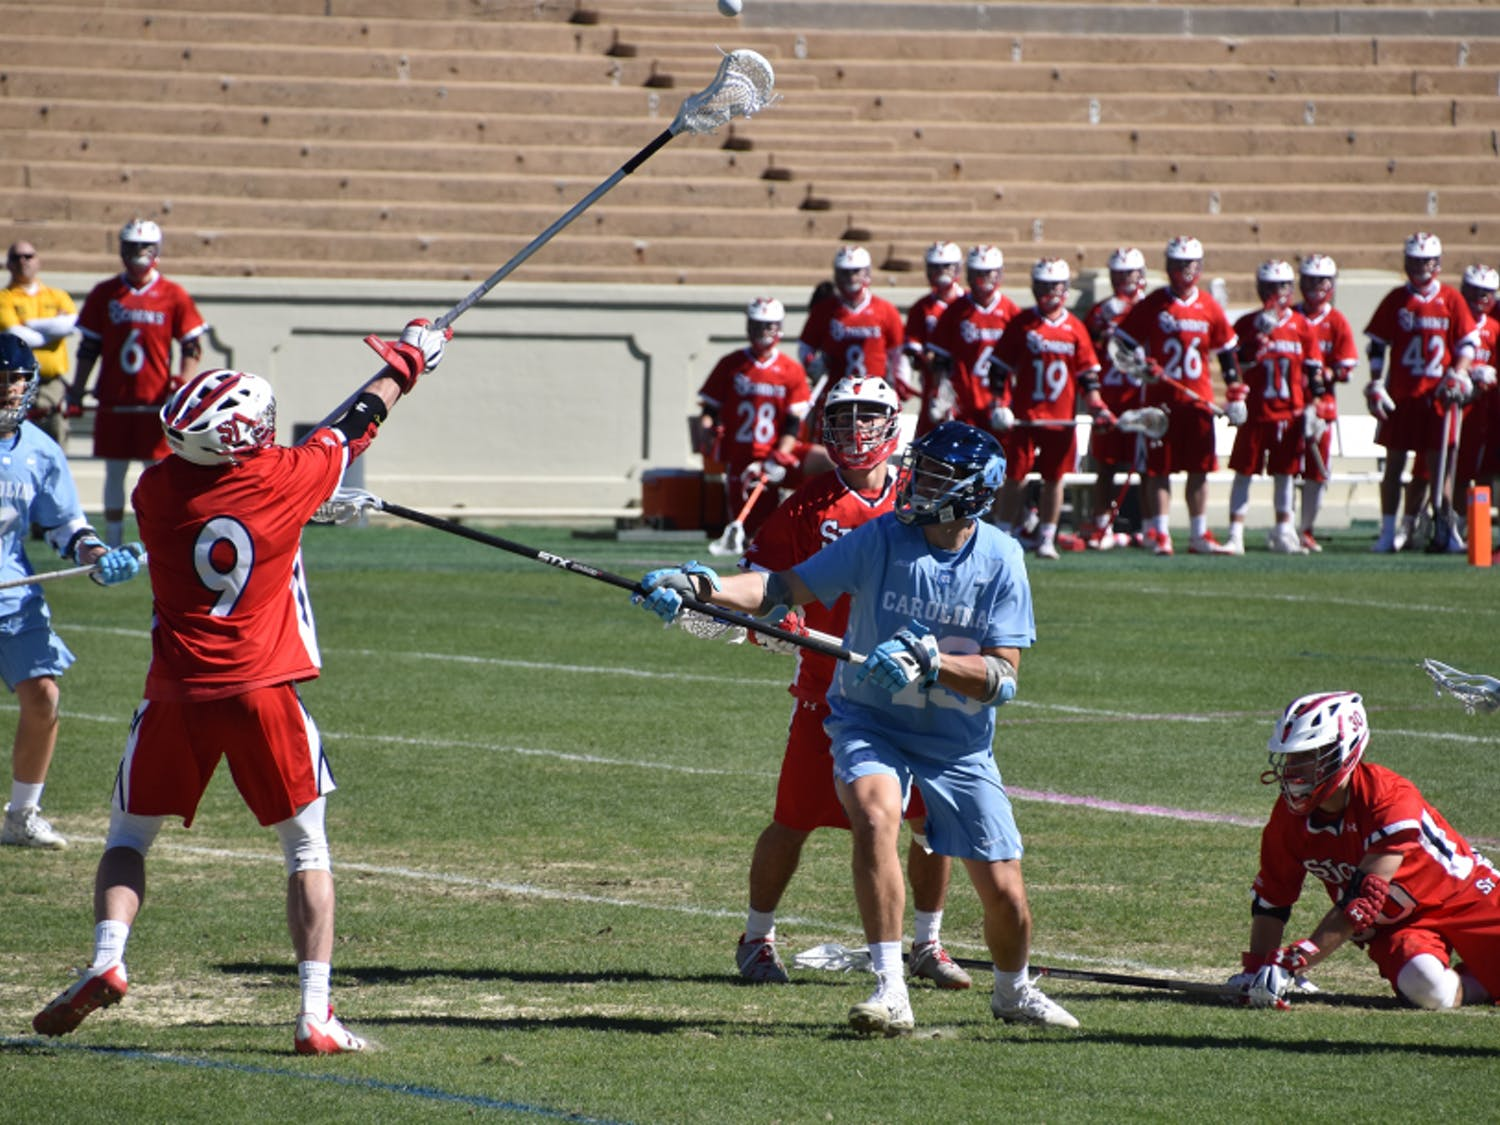 UNC junior midfielder Andy Matthews (12) battles for the ball against two St. John's defenders on March 3 at Kenan Stadium.